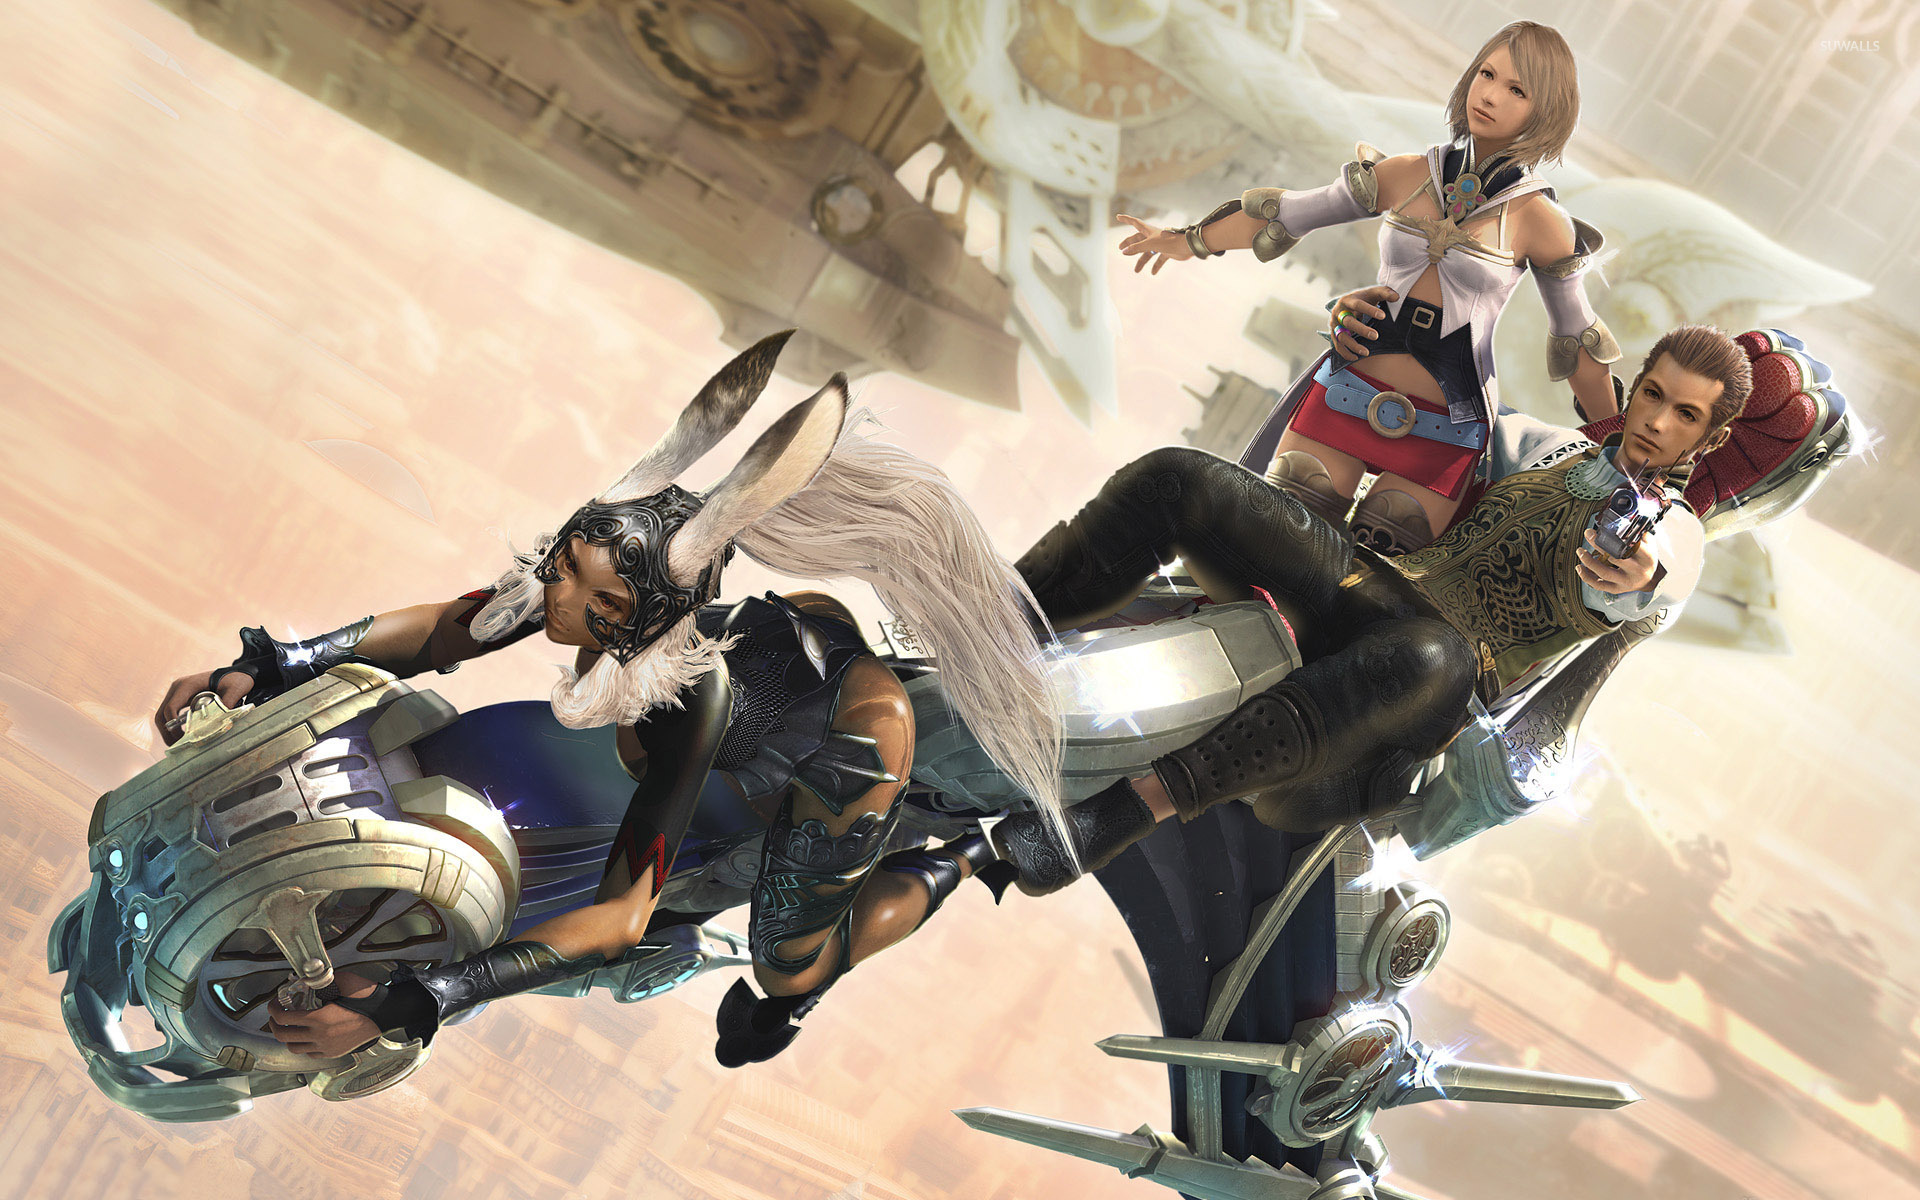 Final Fantasy Xii Wallpaper Game Wallpapers 4062